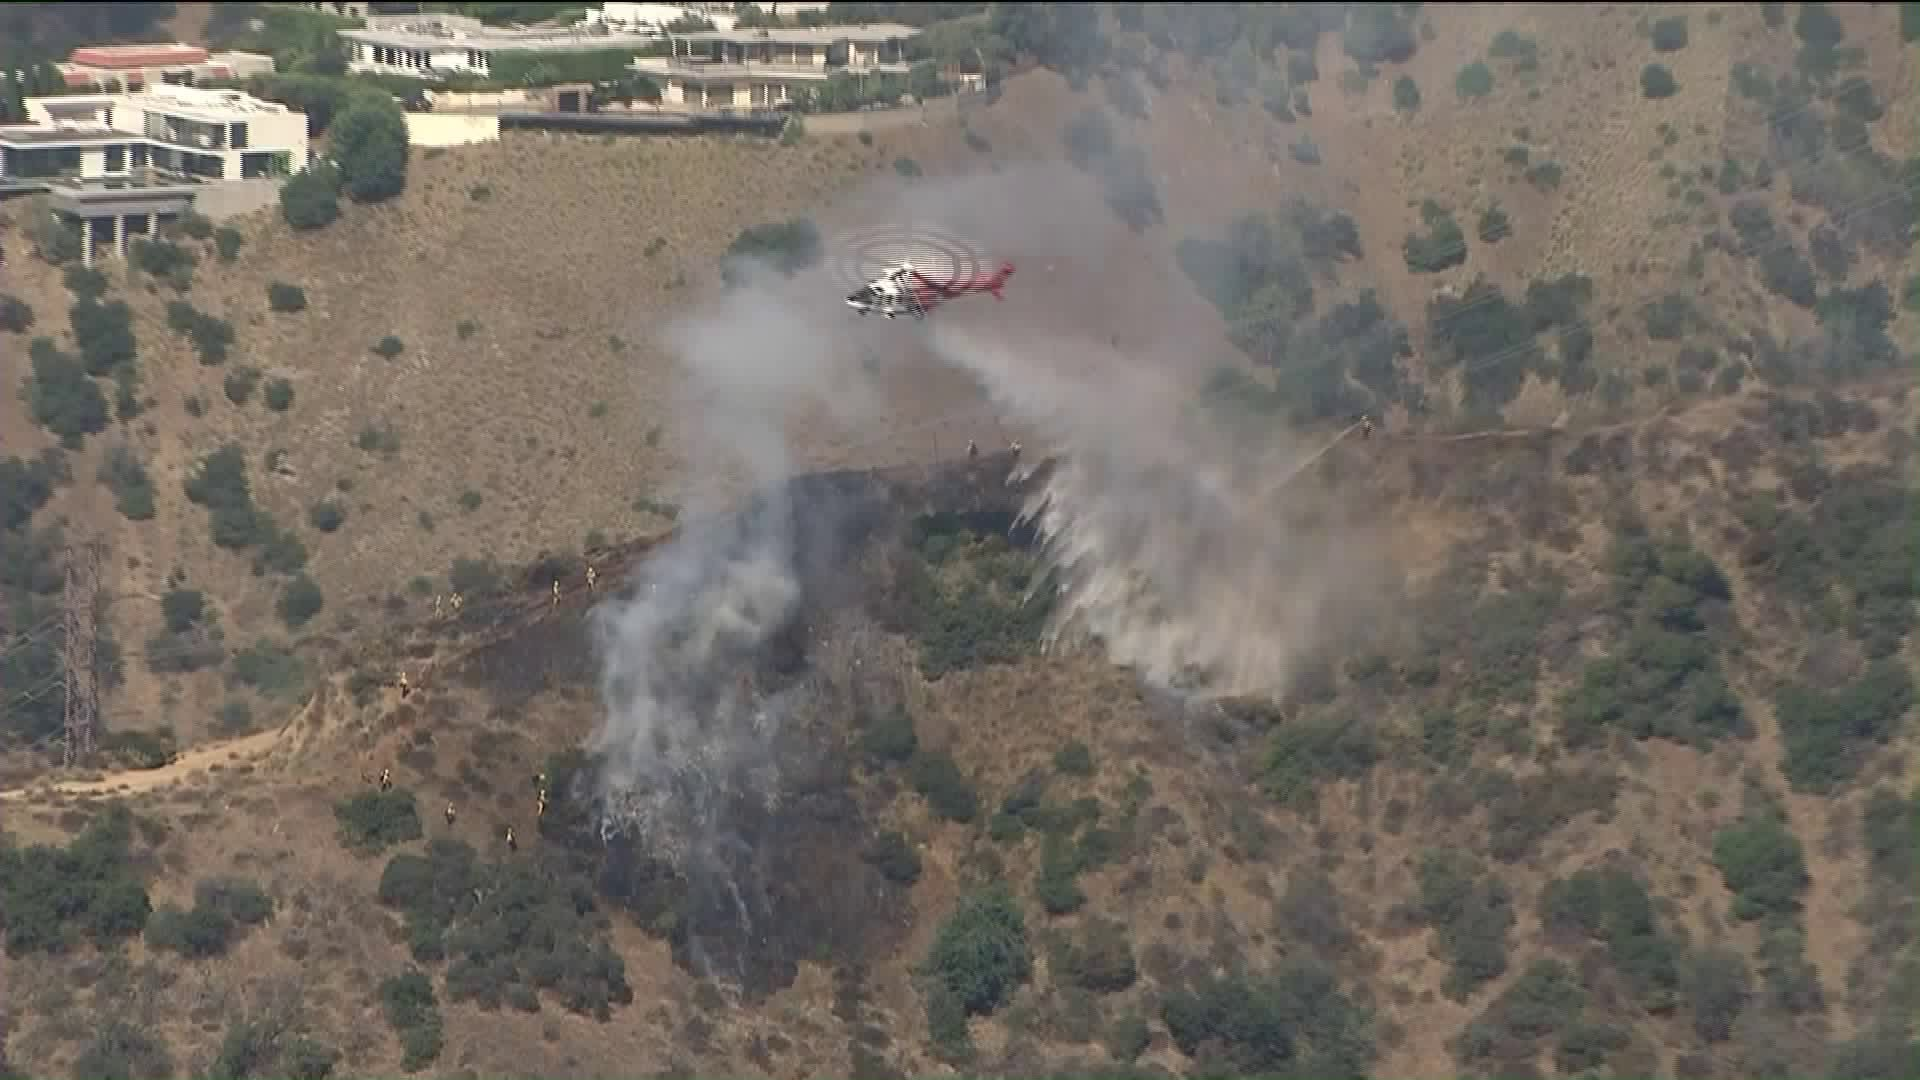 A helicopter drops water on a brush fire in Hollywood Hills West on Aug. 14, 2019. (Credit: KTLA)